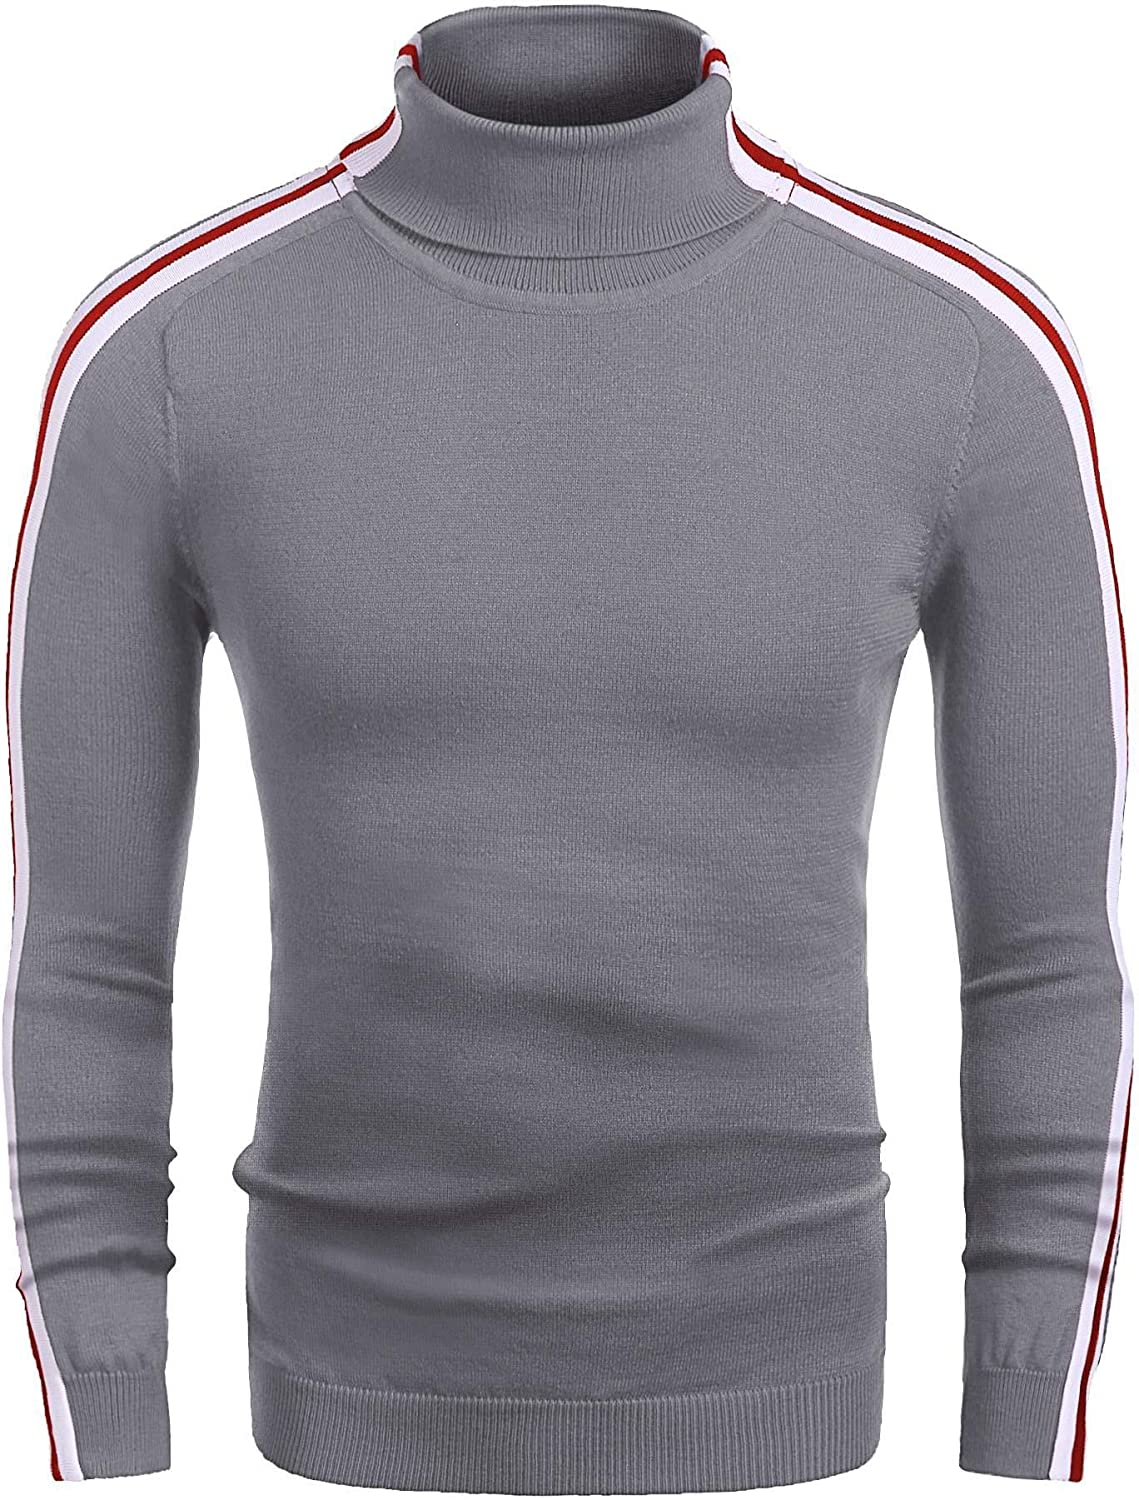 COOFANDY Men's Slim Fit Turtleneck Sweater Striped Thermal Knitted Pullover Sweater